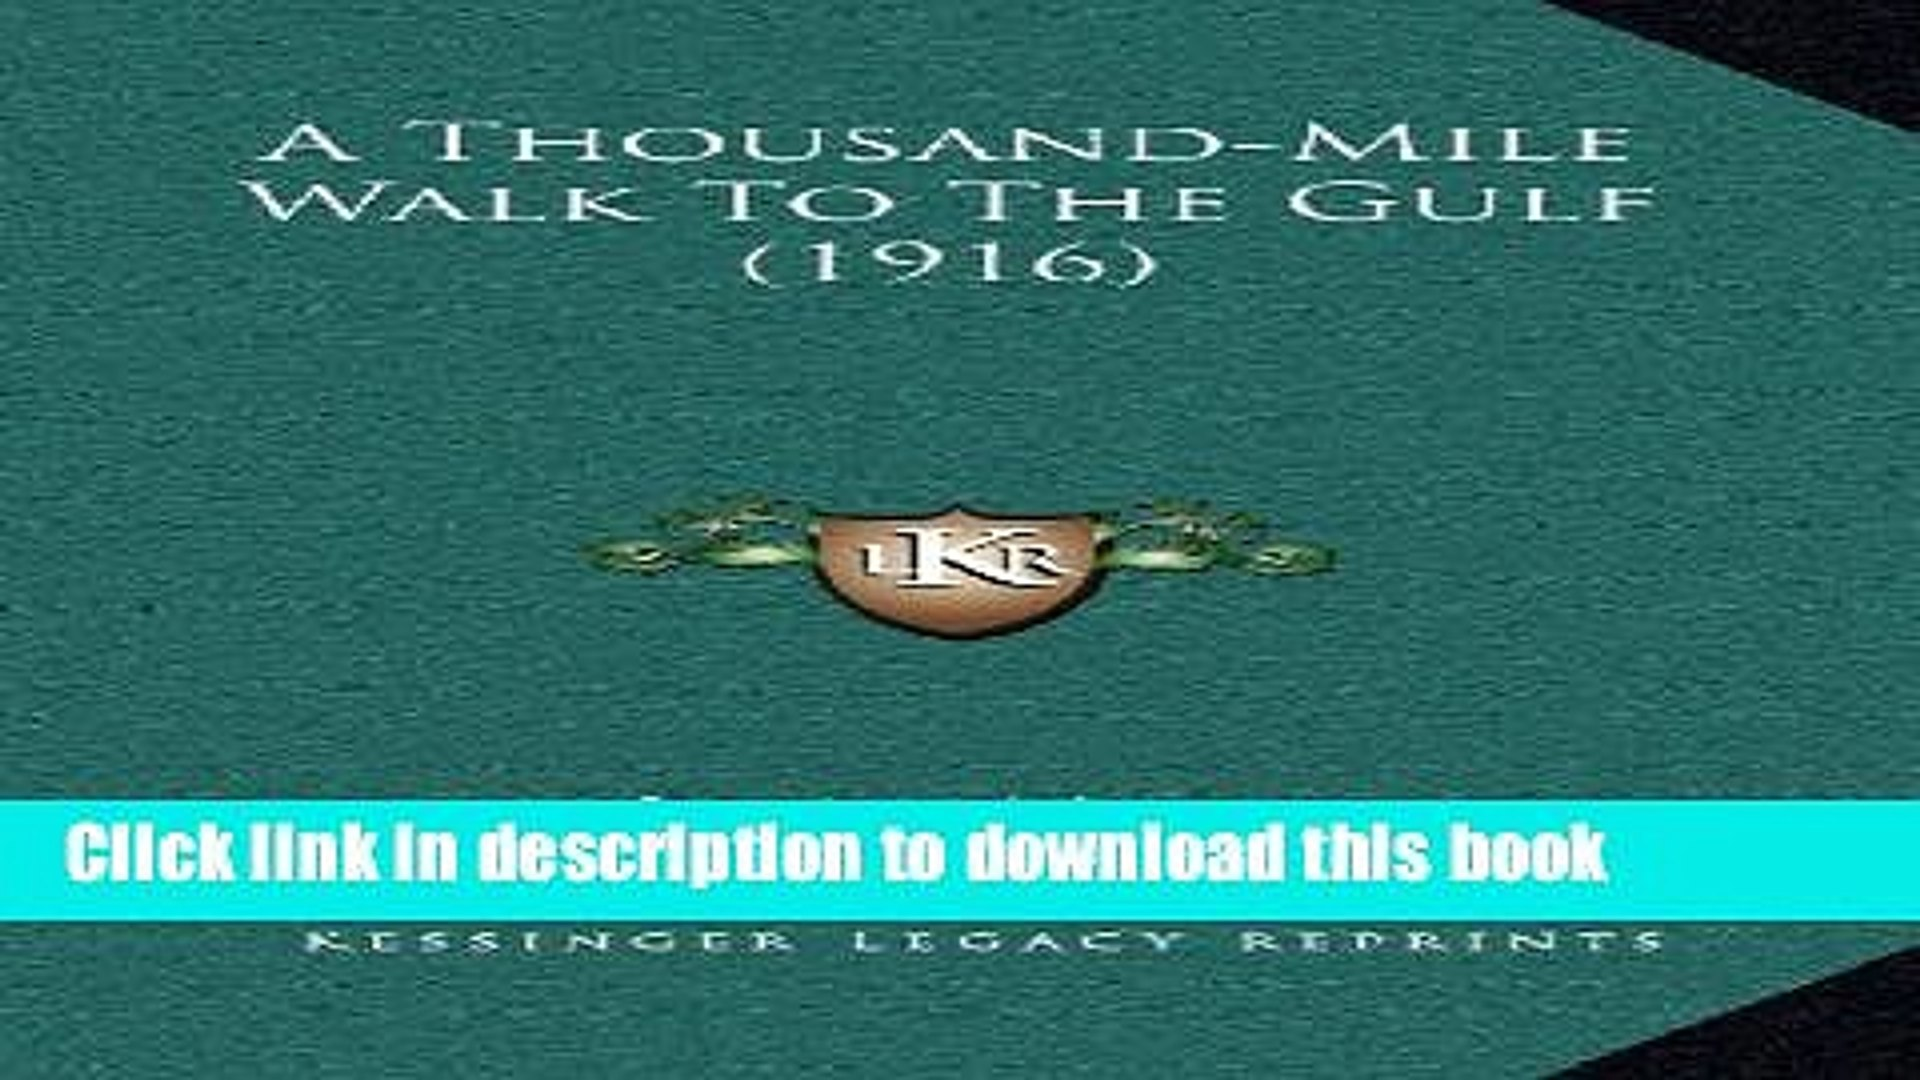 Read A Thousand-Mile Walk To The Gulf (1916)  Ebook Free